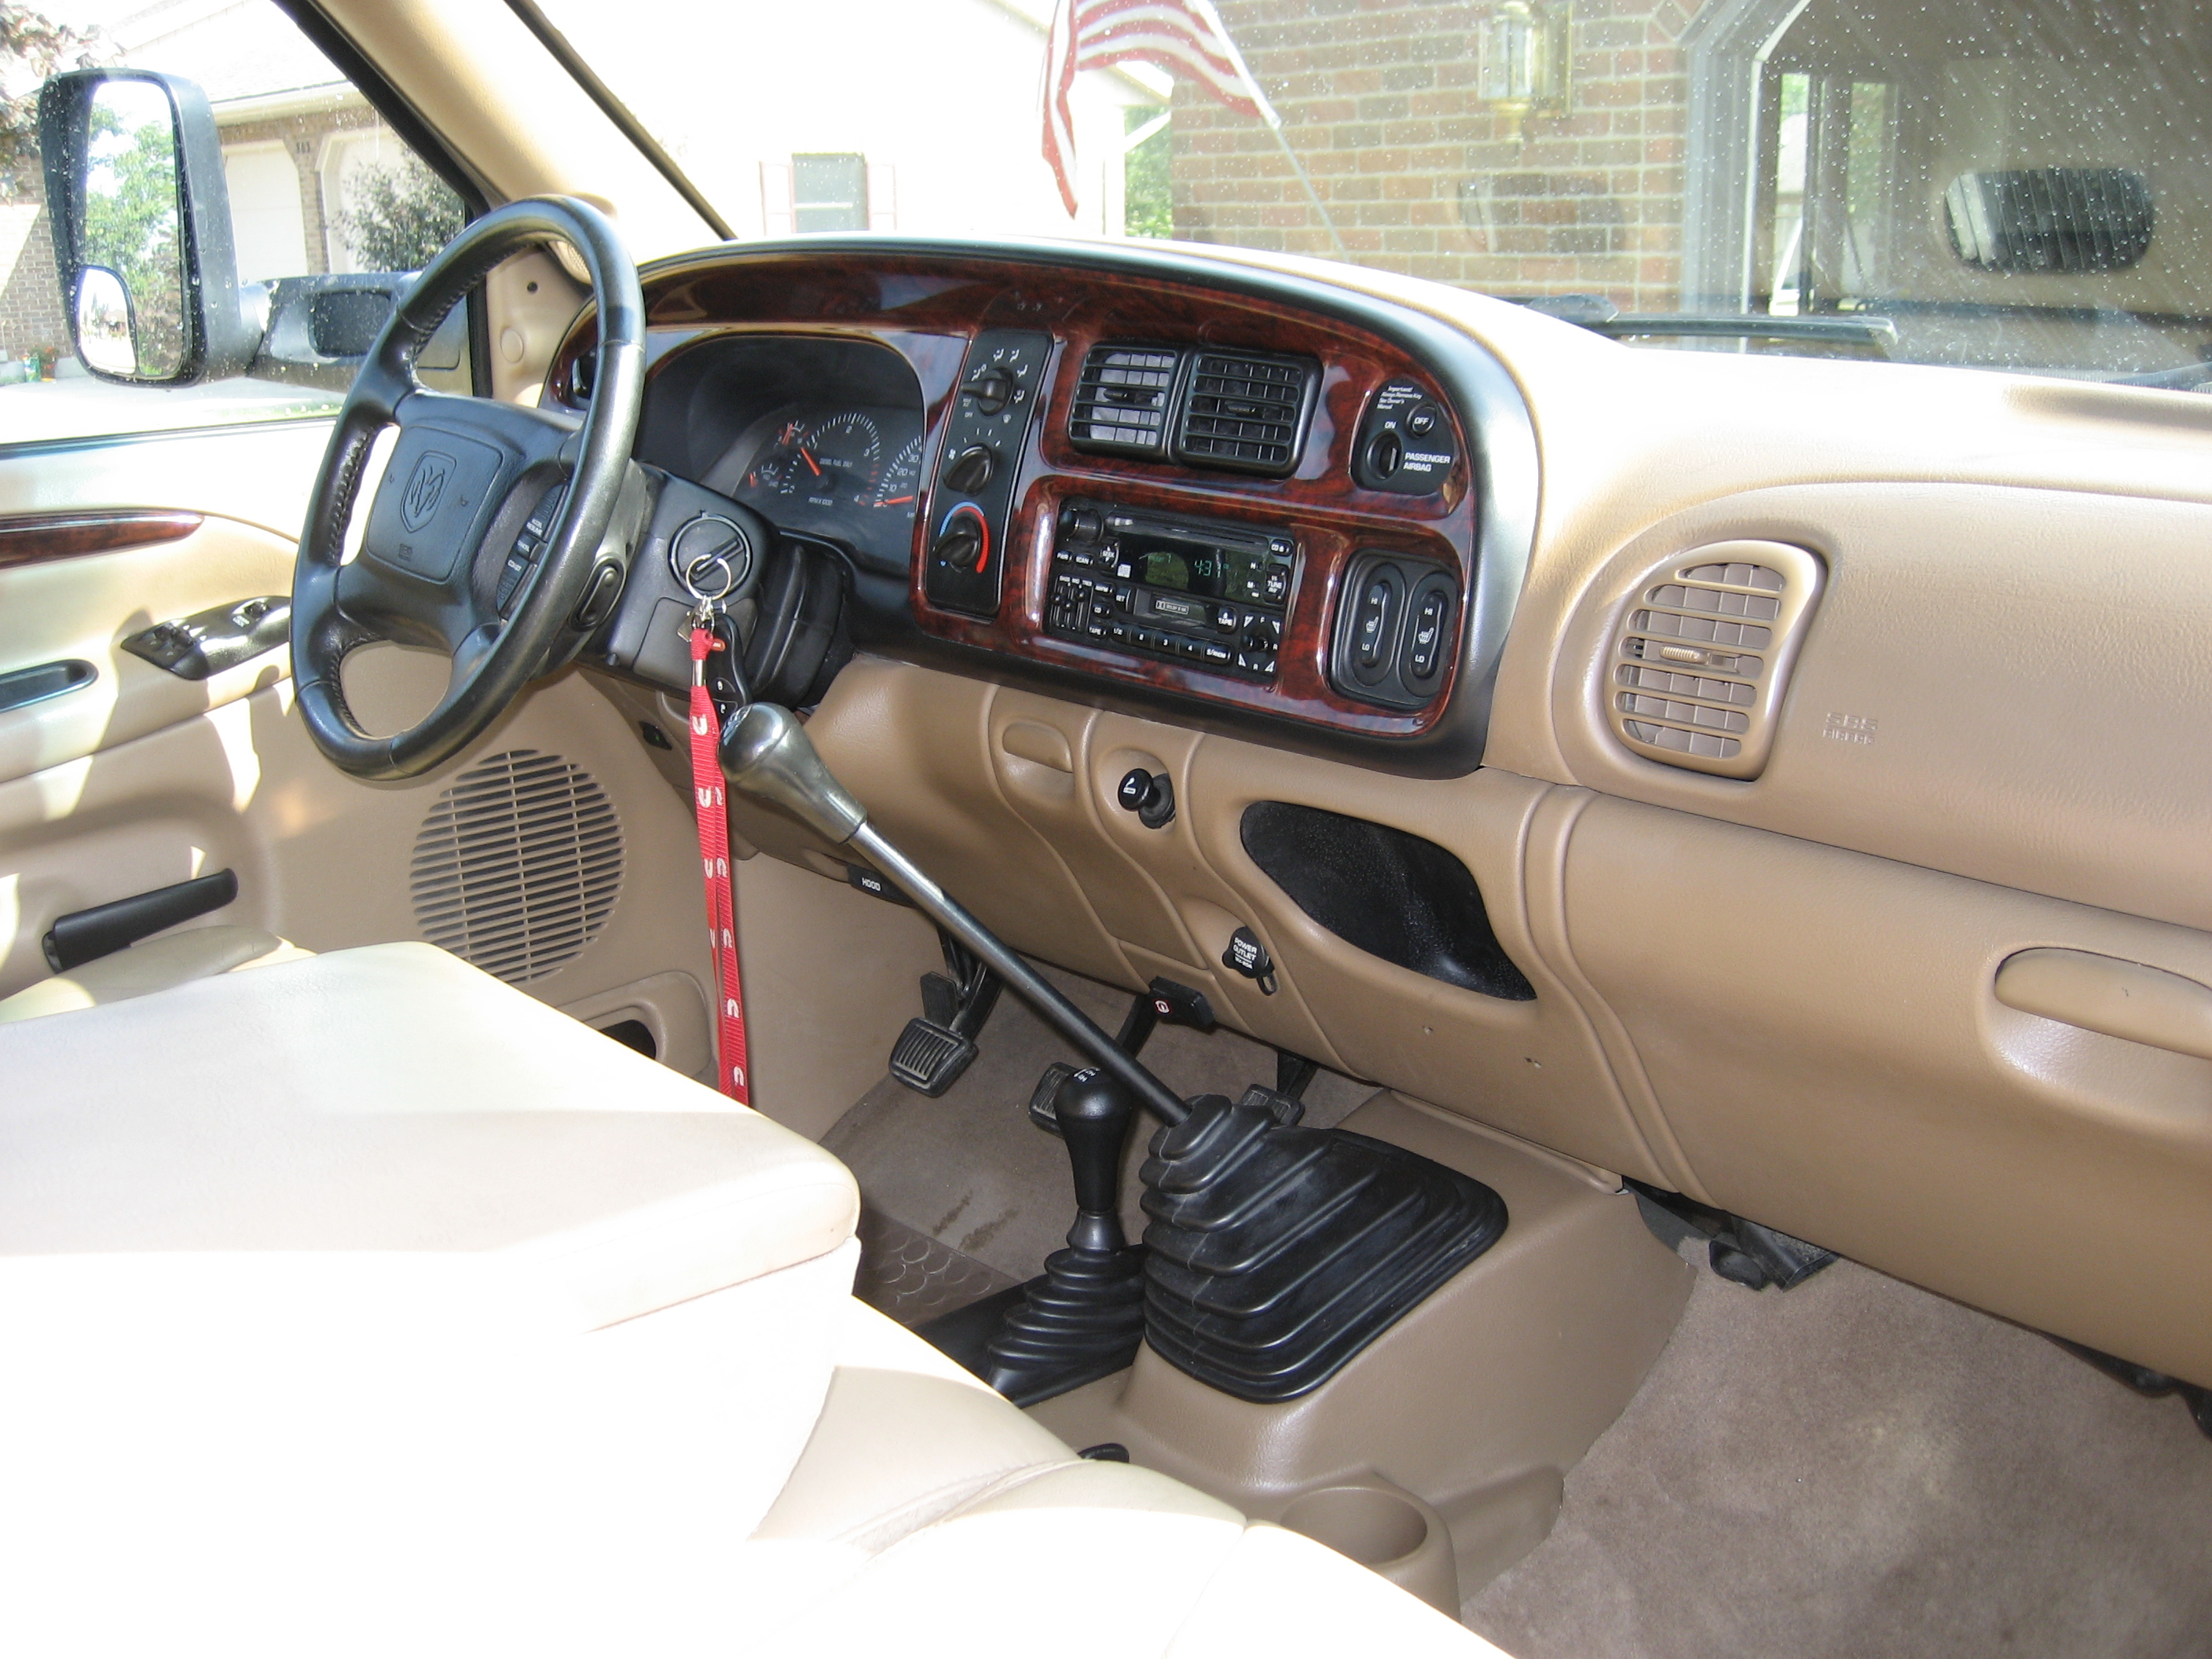 Cars dodge ram (br/be) 2000 #1